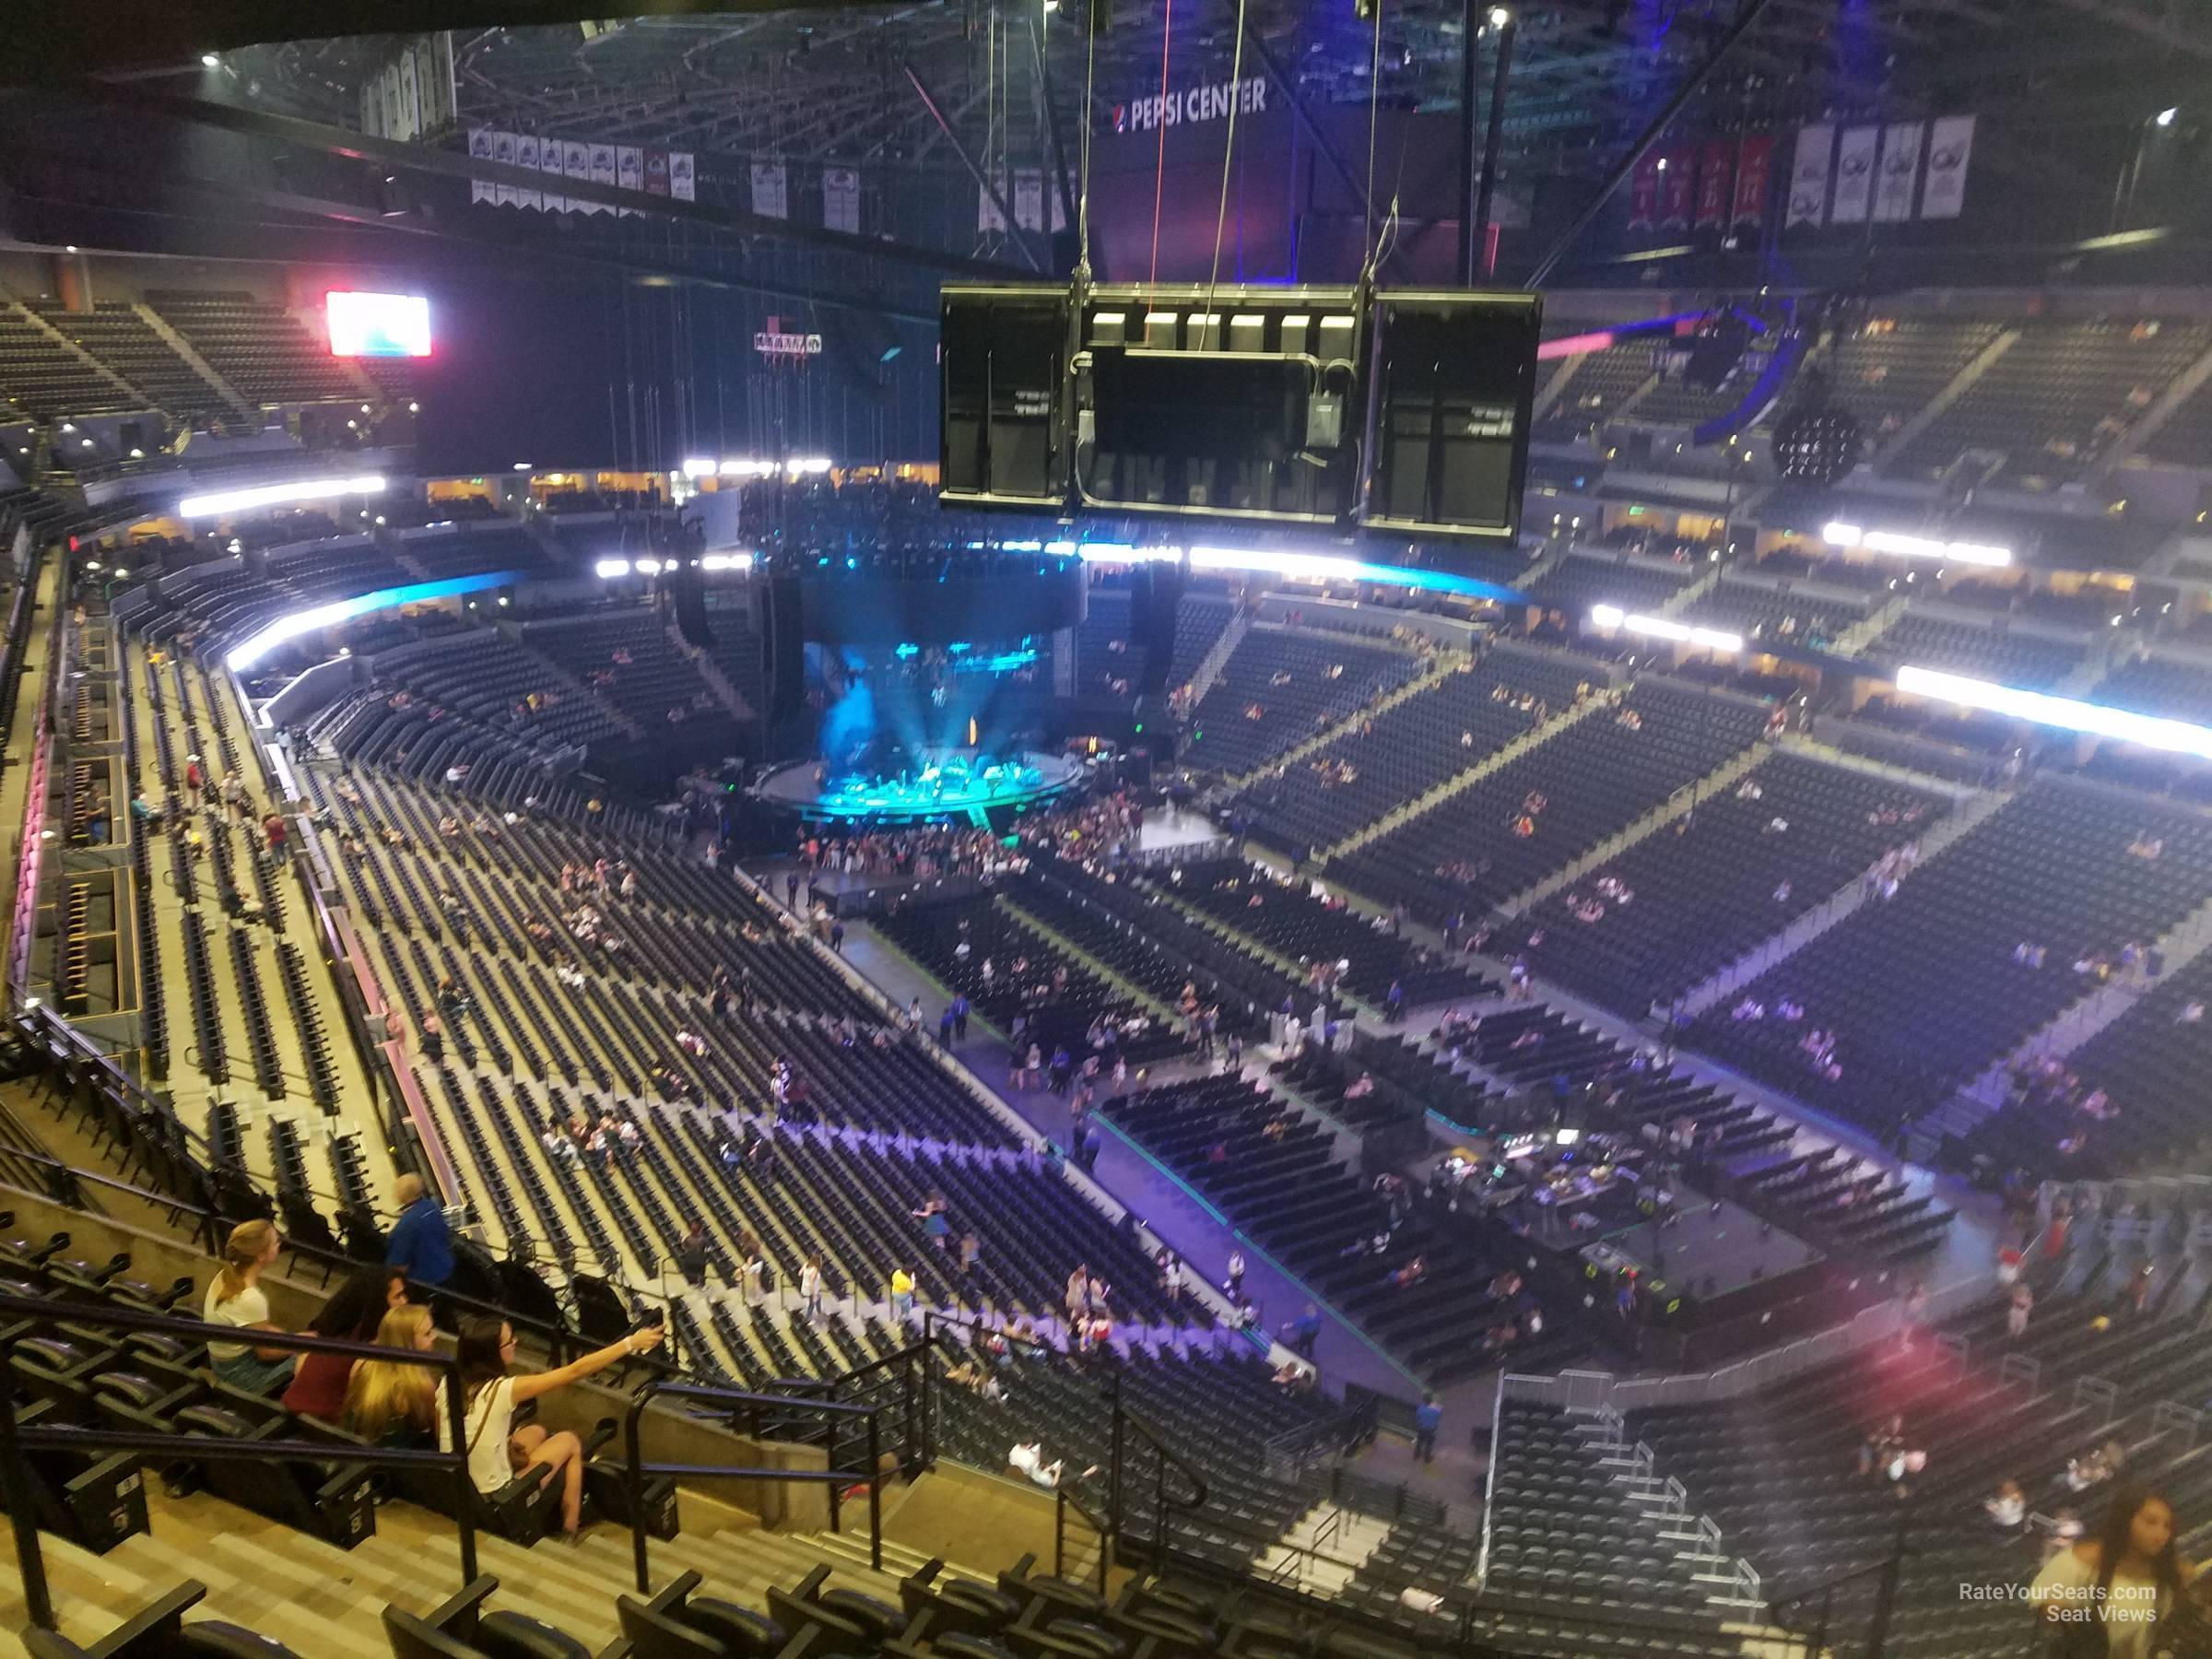 Section 330 At Pepsi Center For Concerts Rateyourseats Com